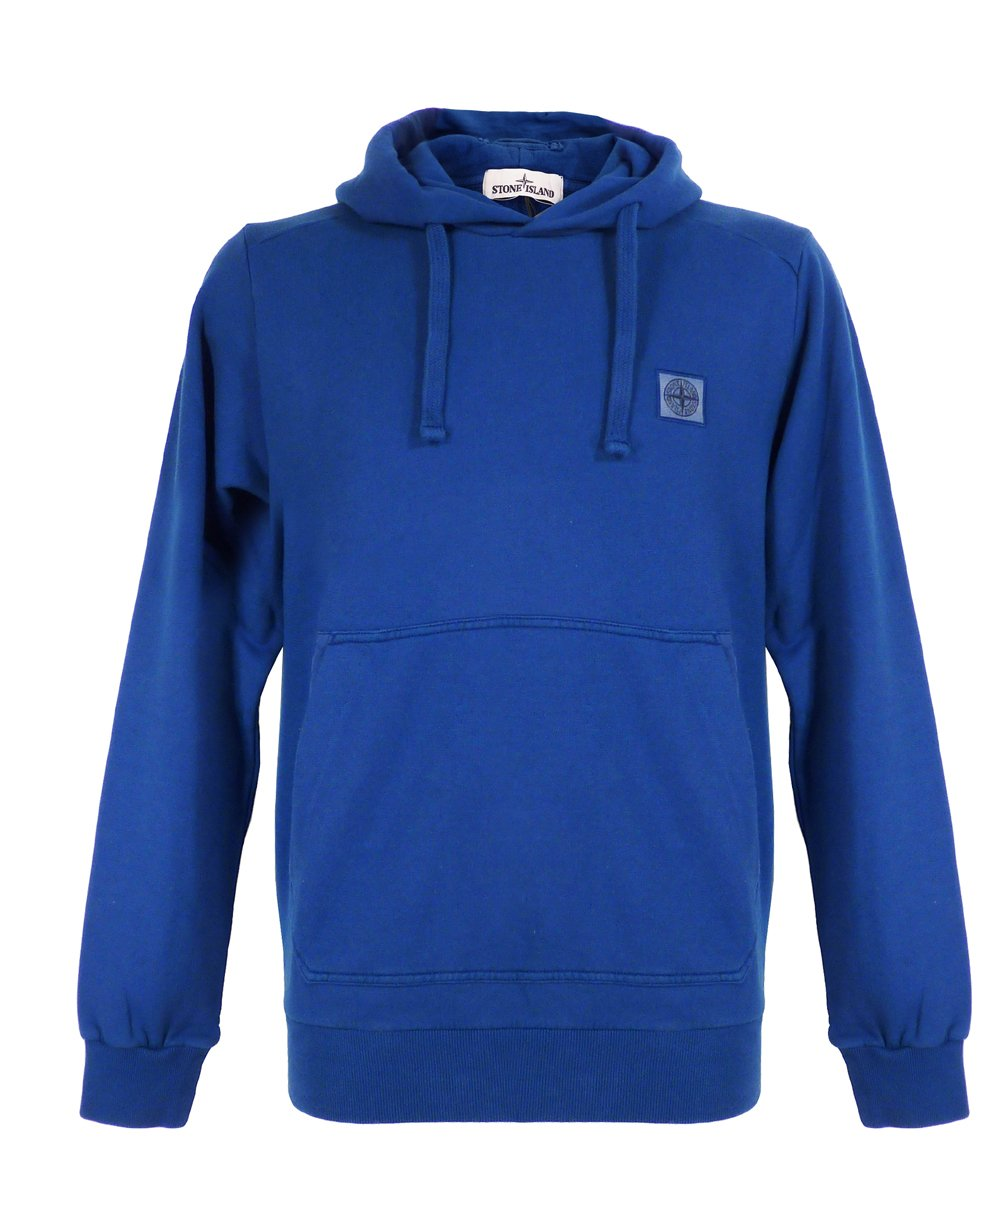 Blue Zip Up Hoodies. invalid category id. Blue Zip Up Hoodies. Product - You Can Pee Next To Me HB2 Opposition Adult Hoodie Sweatshirt. Product Image. Price $ Product - New Way - Crewneck That's What I Do Drink And Know Things Sweatshirt Large Royal Blue.